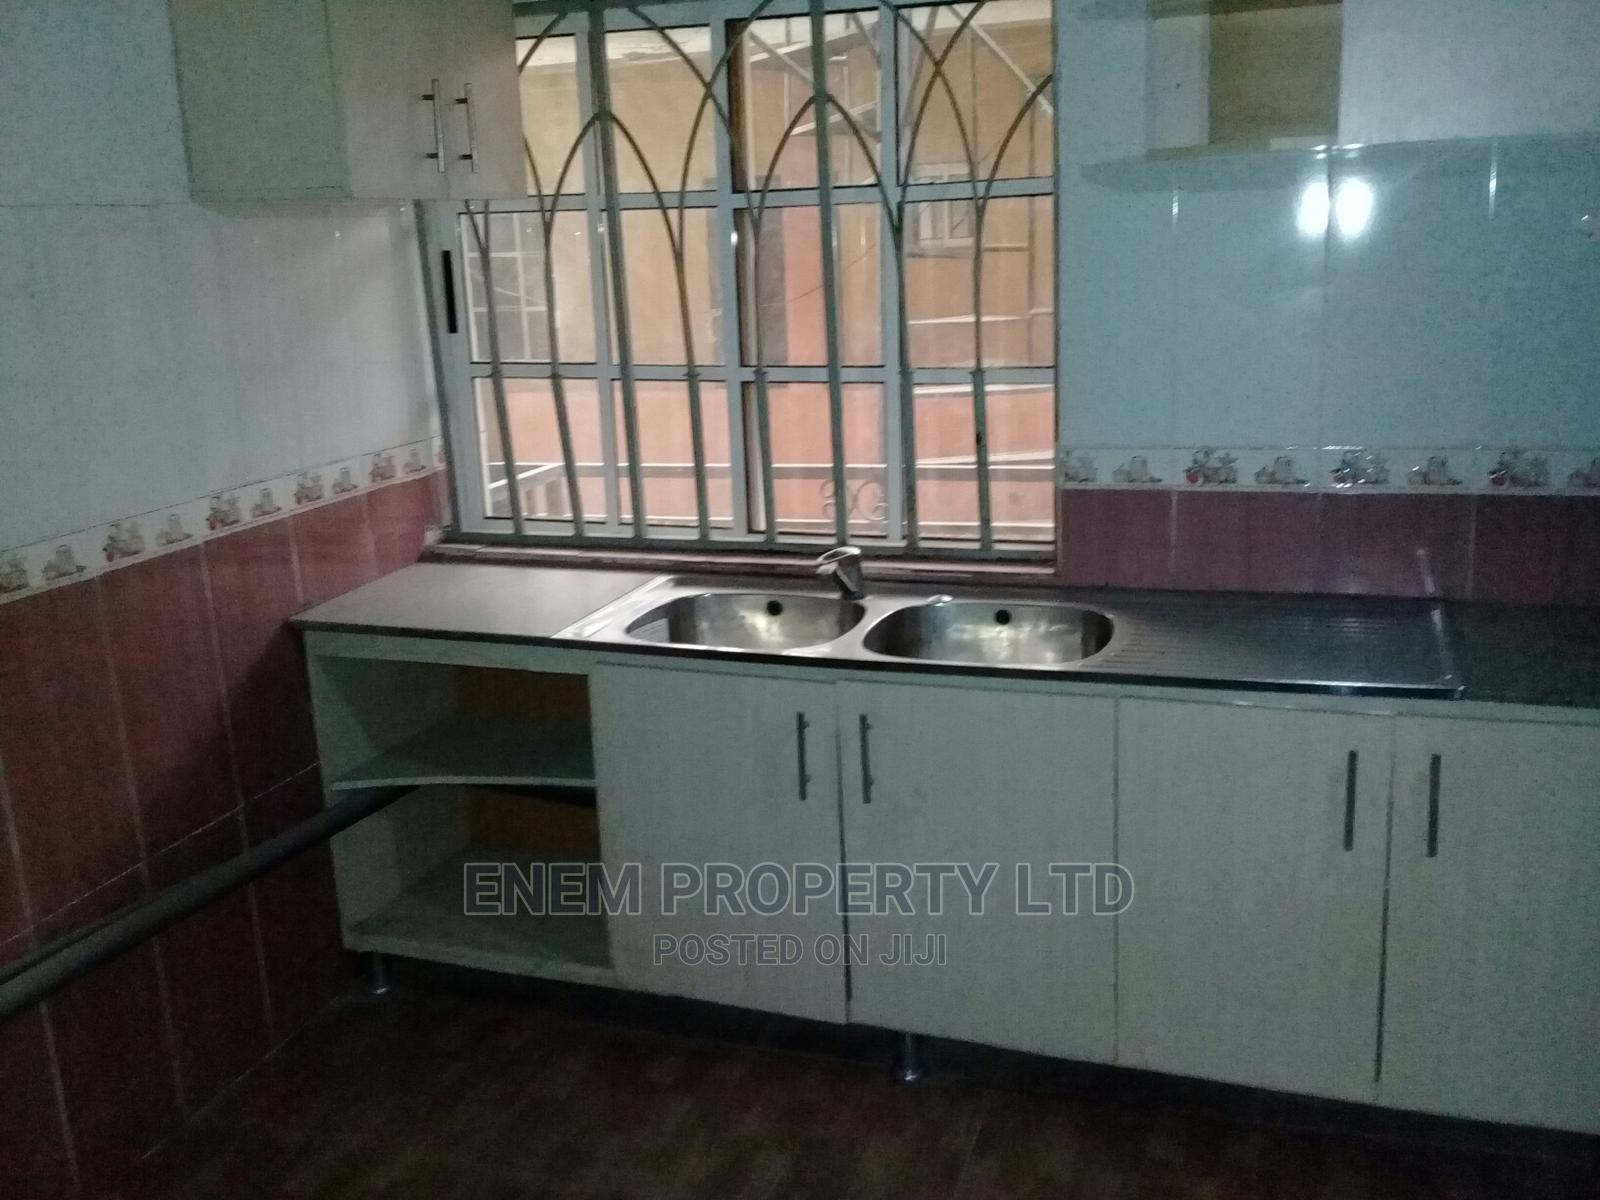 A 5 Bedrooms Duplex   Houses & Apartments For Sale for sale in Garki 1, Abuja (FCT) State, Nigeria